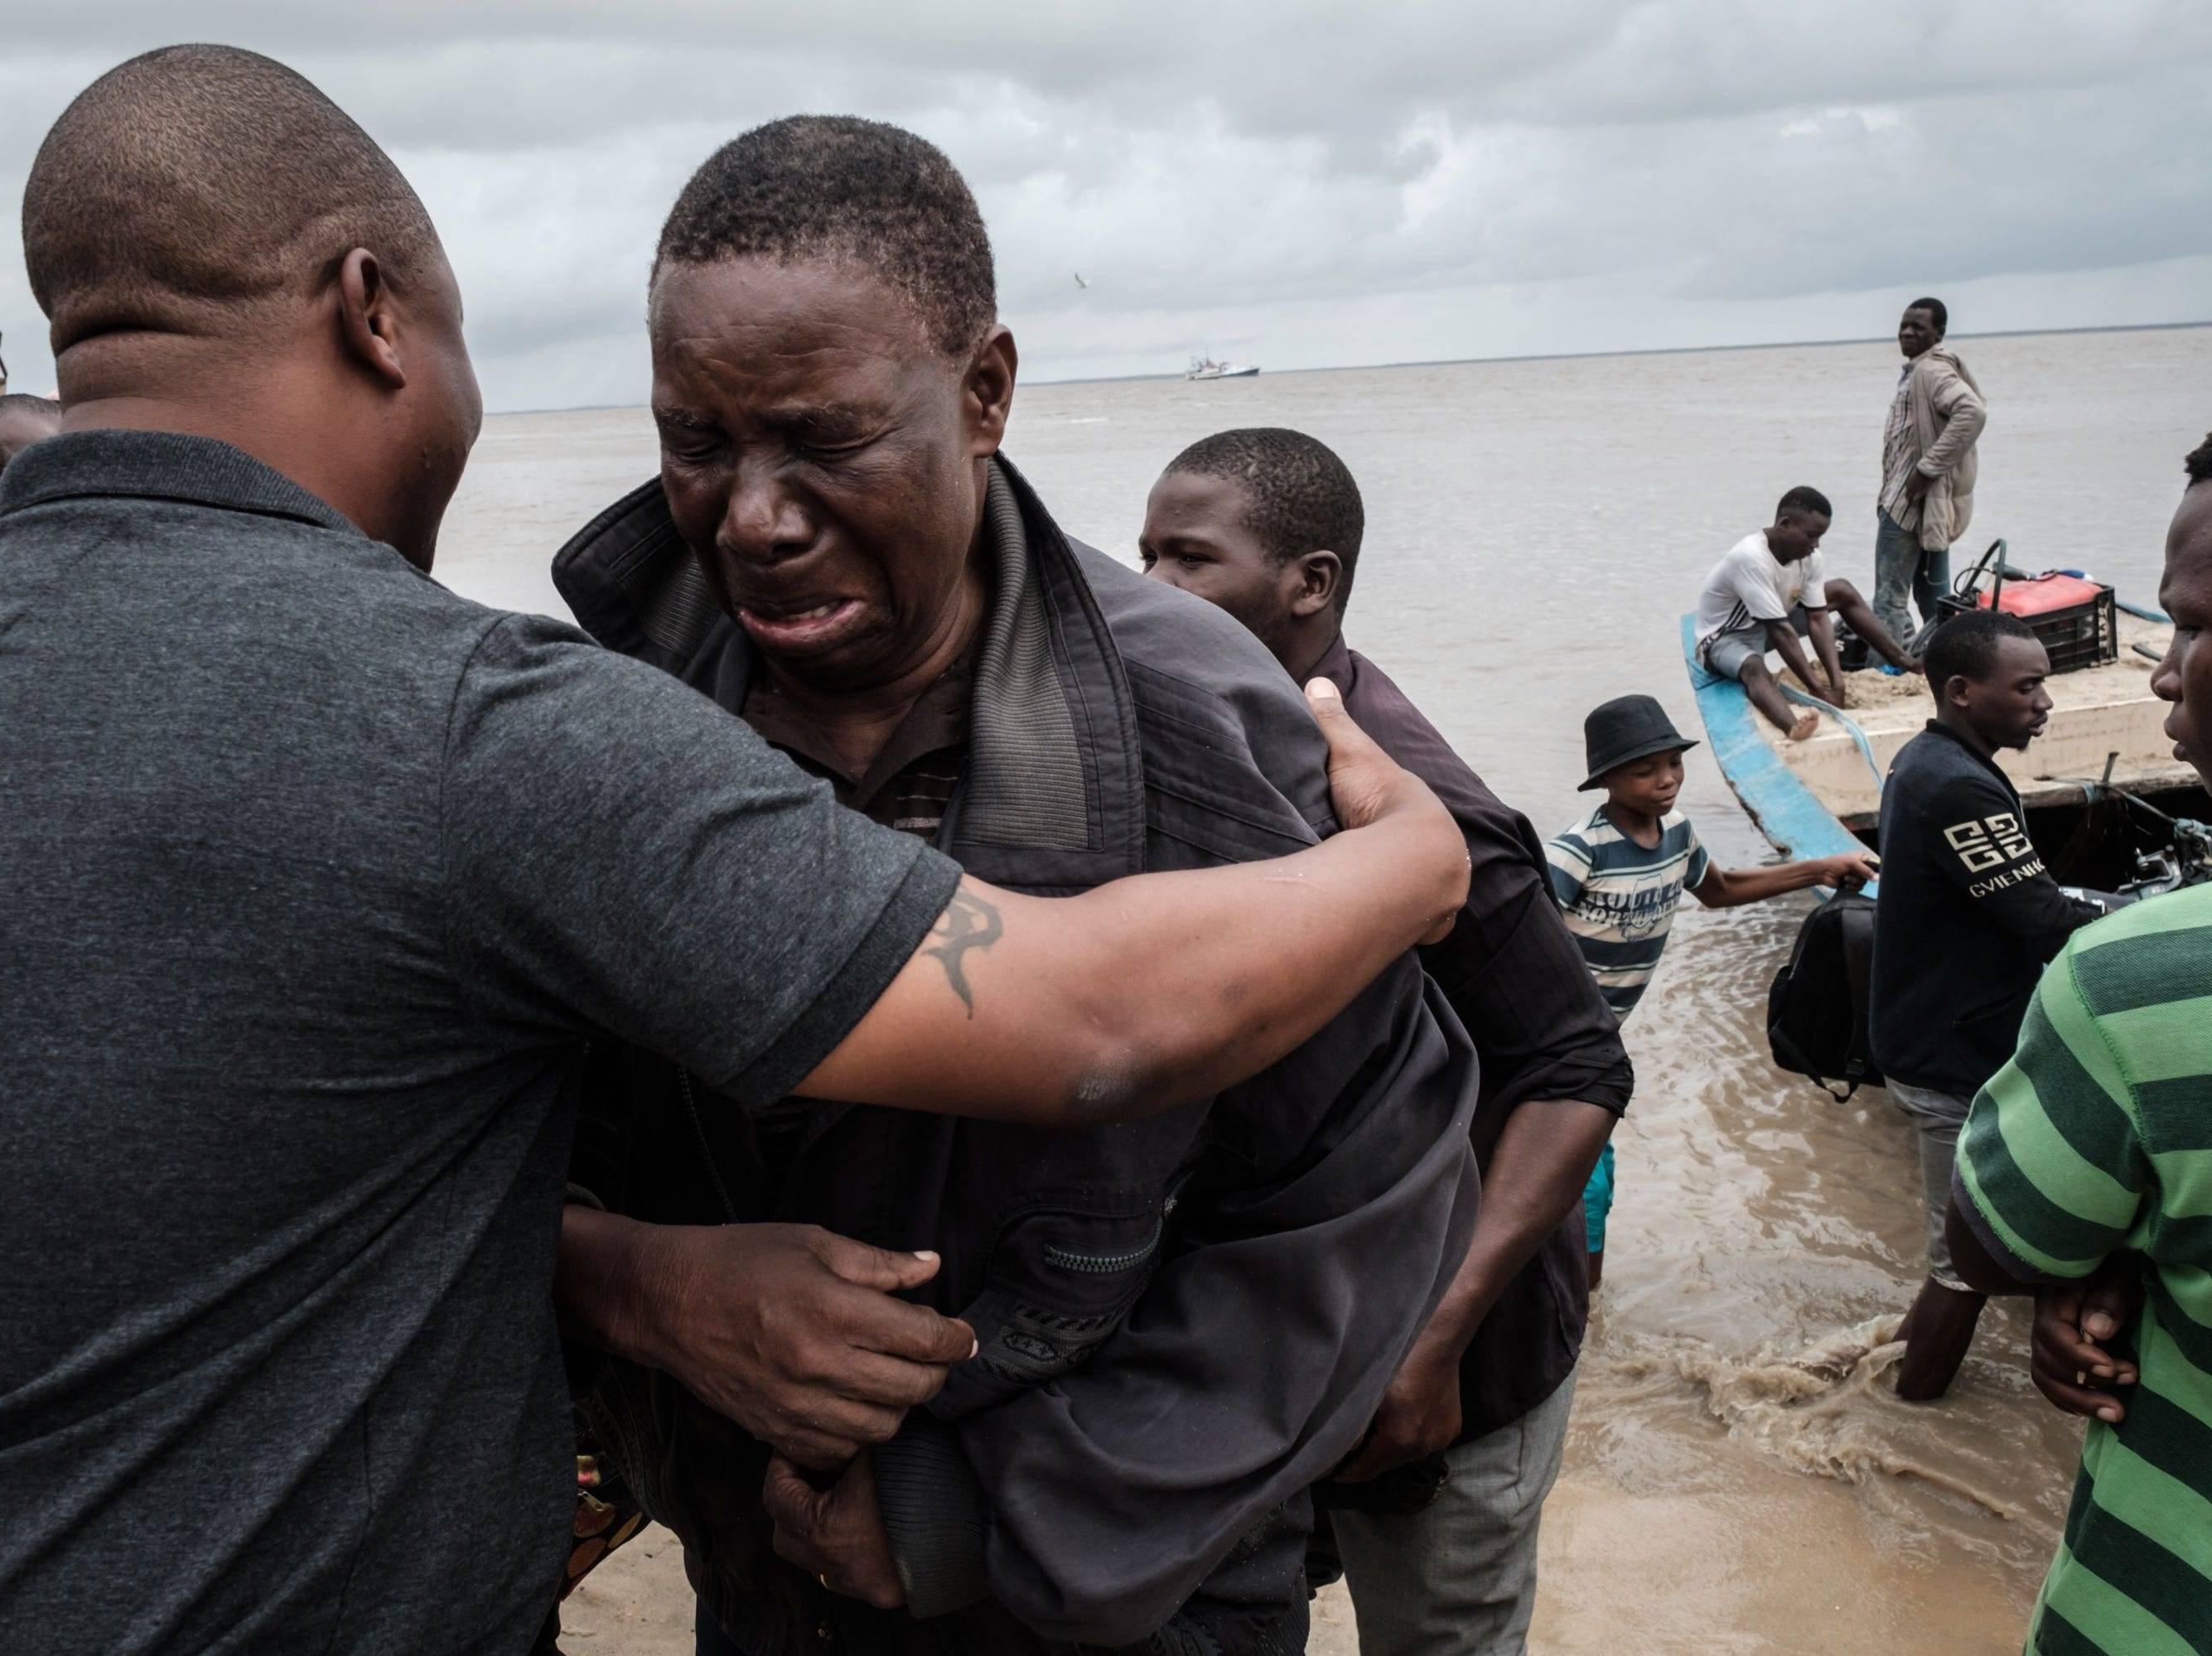 Manuel Machacawa Maezane, 76, cries as he meets his son Aristides, left, after being evacuated from Buzi, on the beach in Beira, Mozambique, on March 23, 2019. The death toll in Mozambique on March 23, 2019 climbed to 417 after a cyclone pummeled swathes of the southern African country, flooding thousands of square kilometers, as the UN stepped up calls for more help for survivors. Cyclone Idai smashed into the coast of central Mozambique last week, unleashing hurricane-force winds and rains that flooded the hinterland and drenched eastern Zimbabwe leaving a trail of destruction.